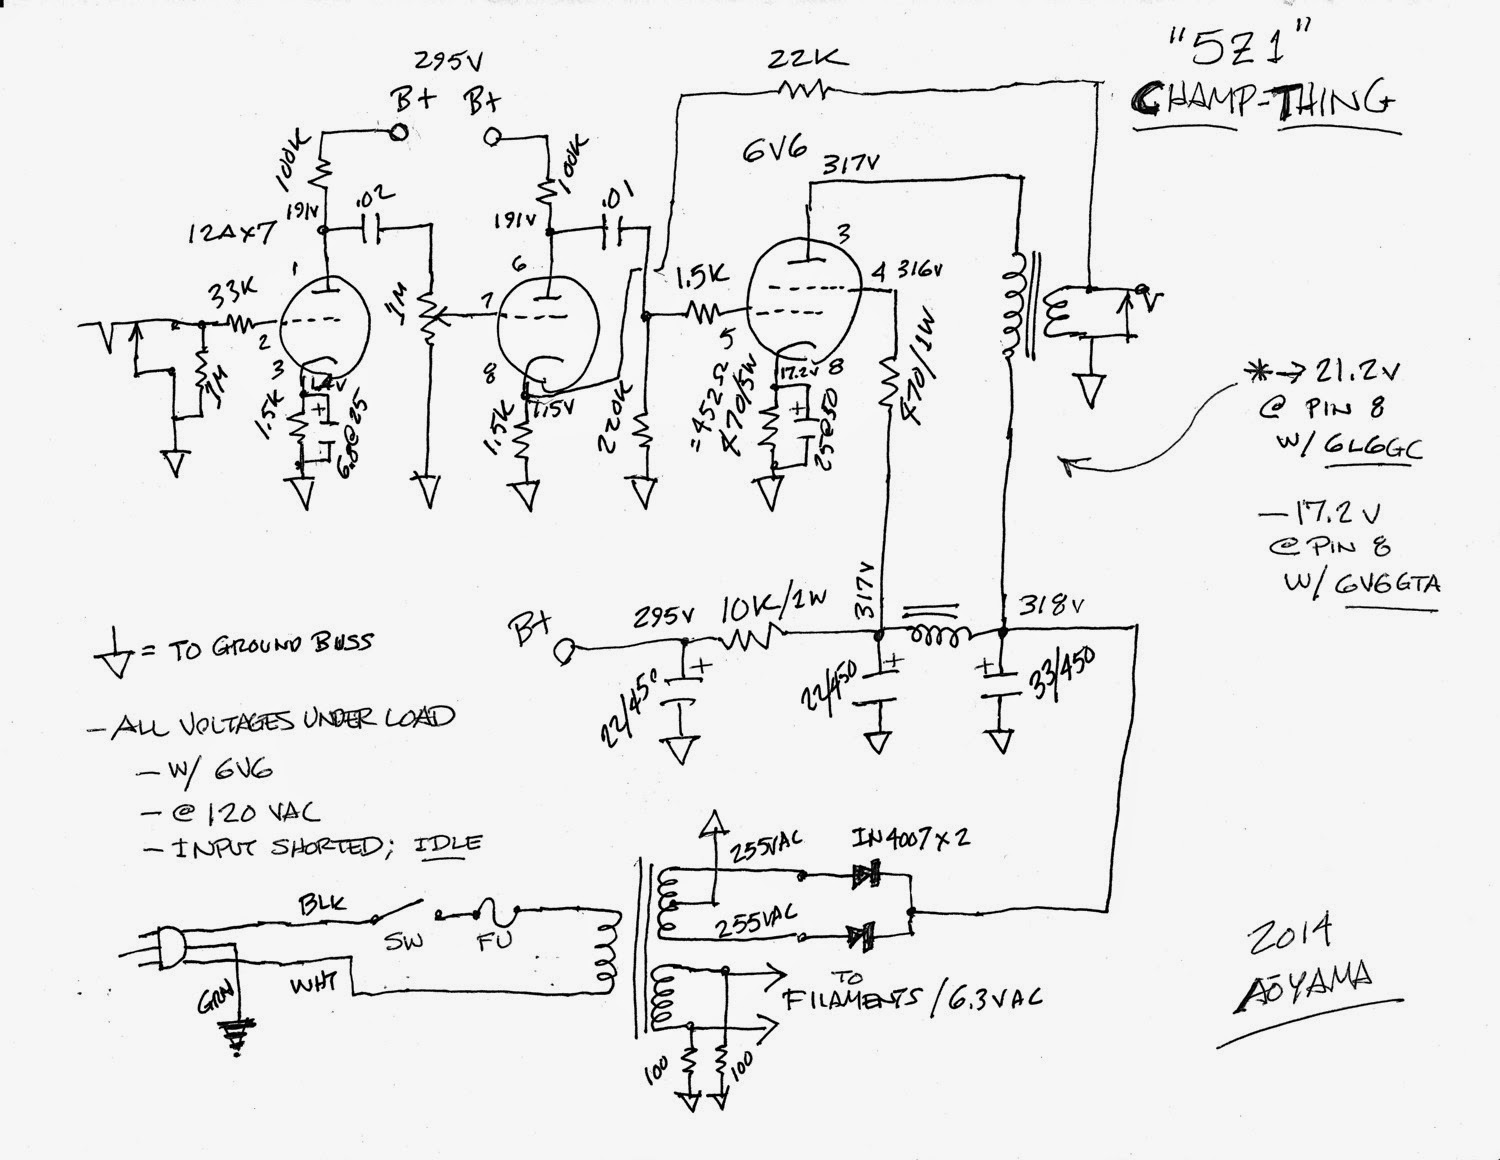 99+Cent+Champ+Schematic origami night lamp the 99 cent champ amp, part 3 5f1 wiring diagram at edmiracle.co